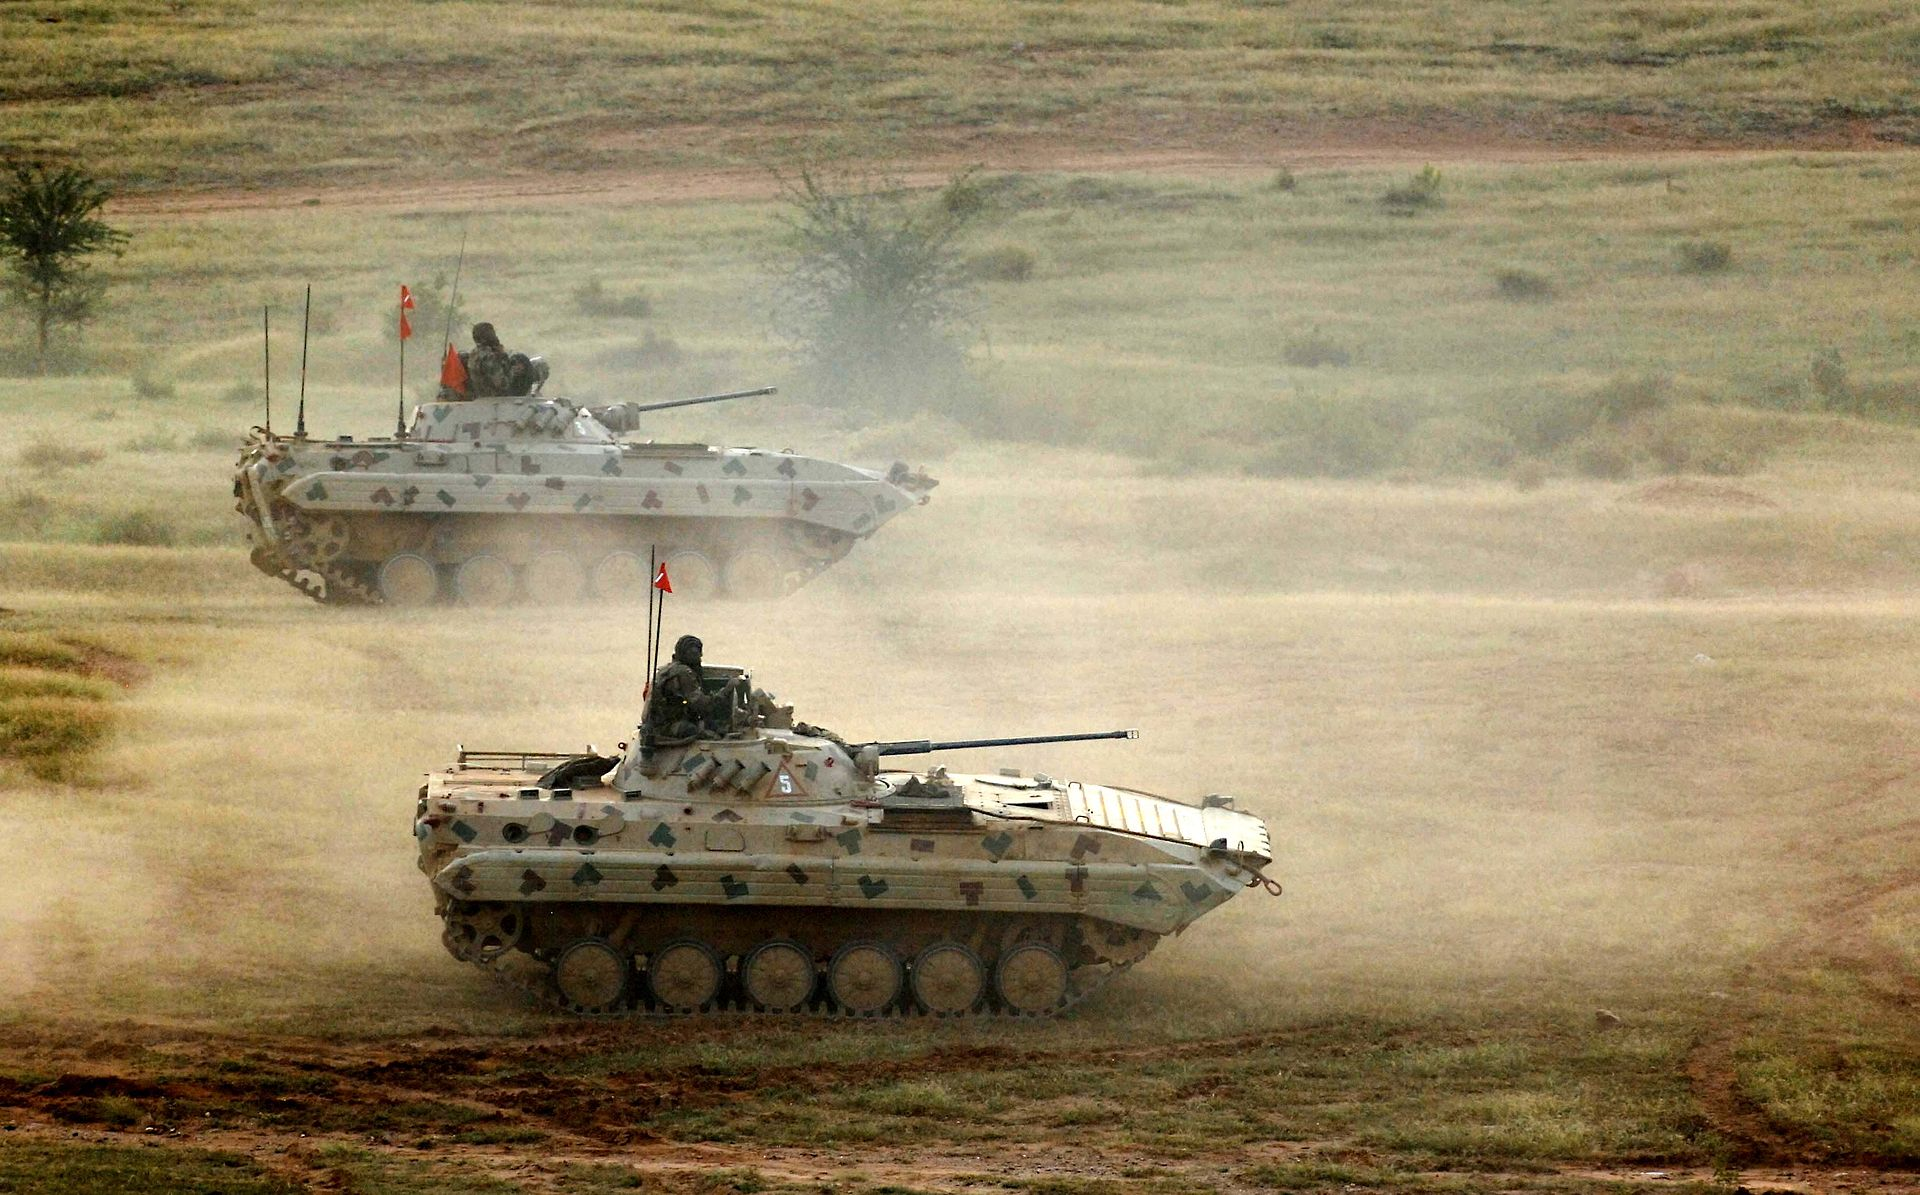 Indian Army's upgraded BMP-2 Sarath during military exercise in Rajasthan, India.